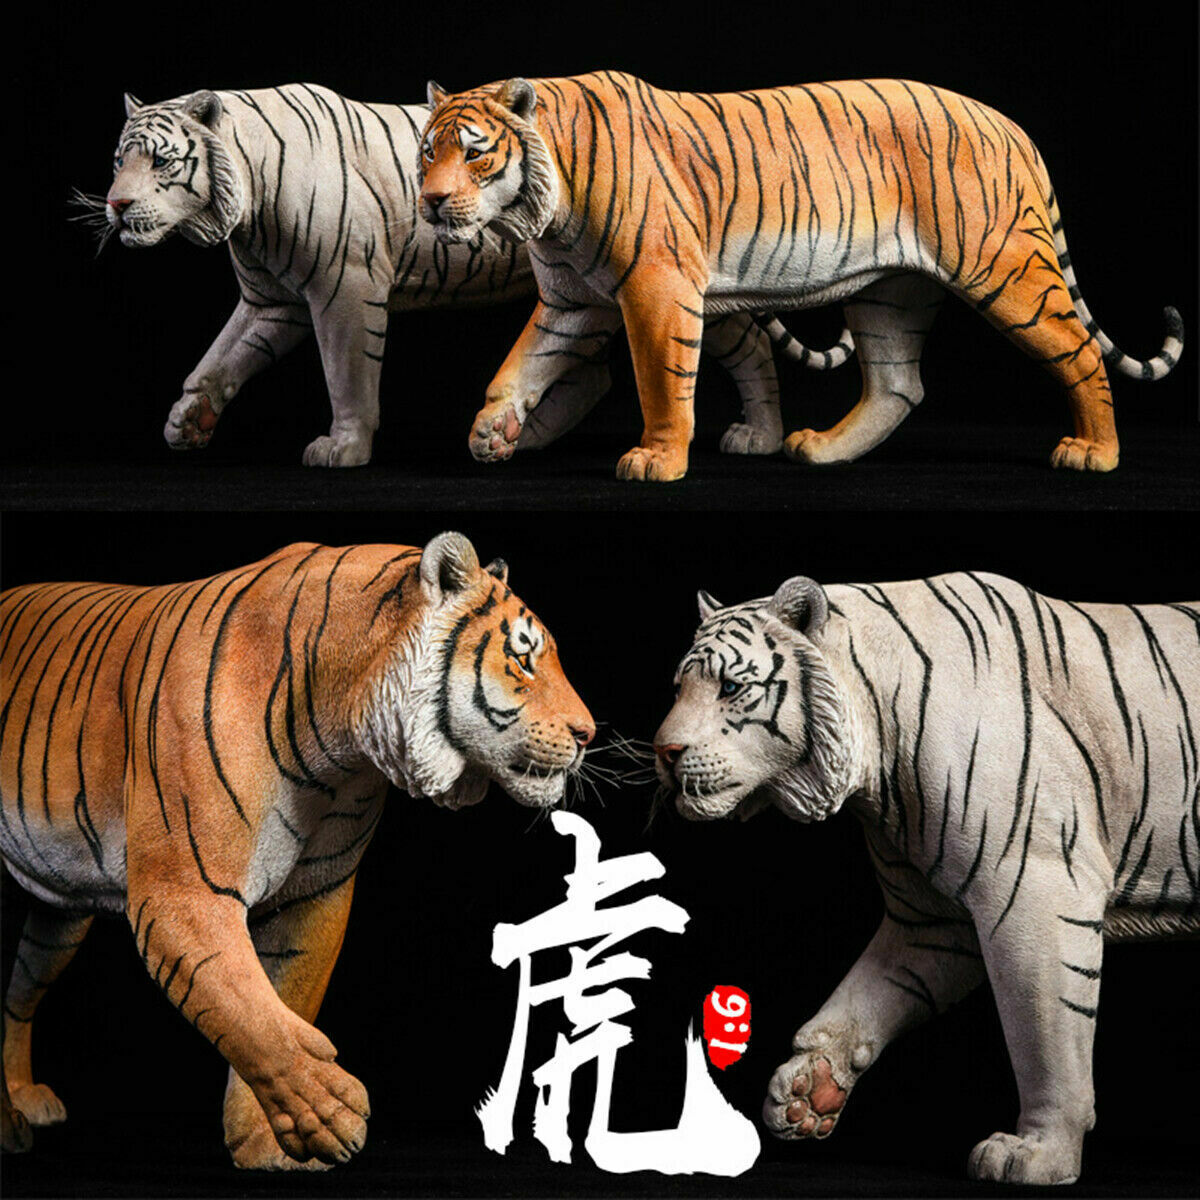 JxK 1 6 Bengal Tiger bianca Tiger cifra Animal  modellololo Collector Felid giocattolo Gift  migliore marca